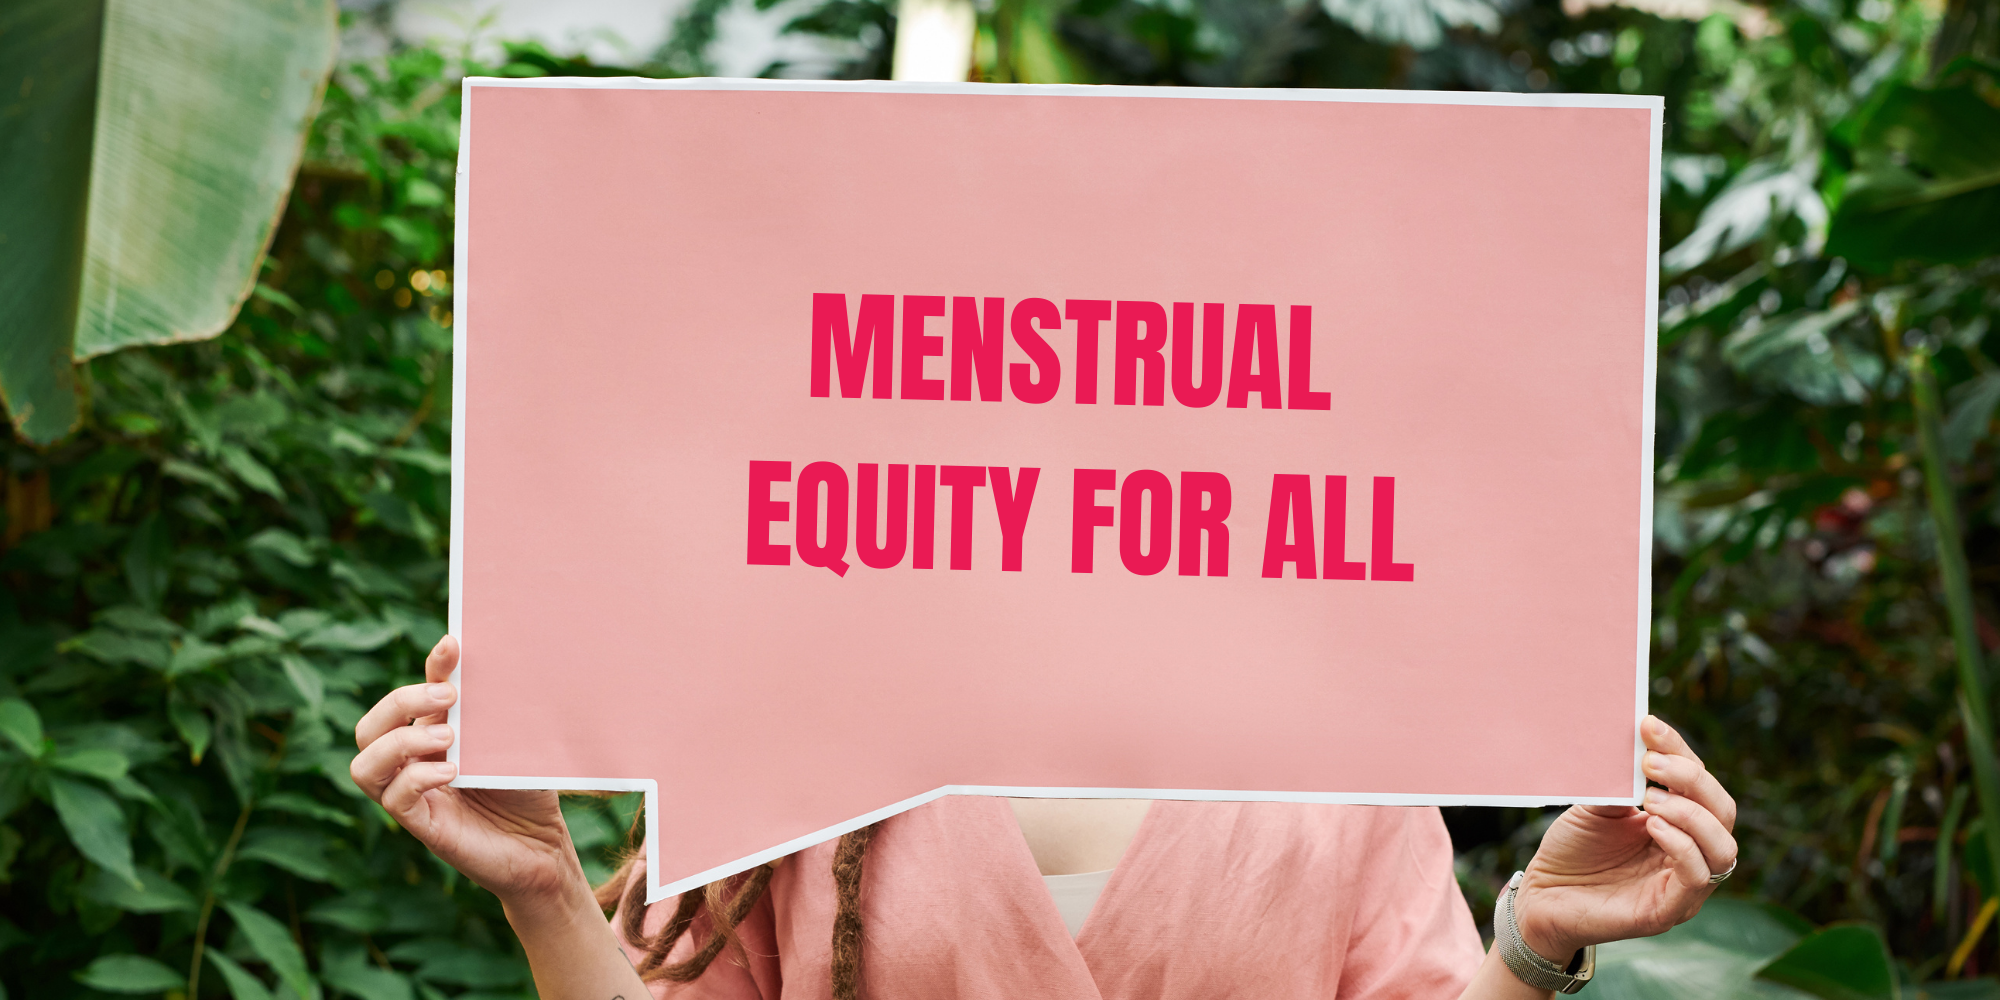 H.R.1467 - The Menstrual Equity for All Act